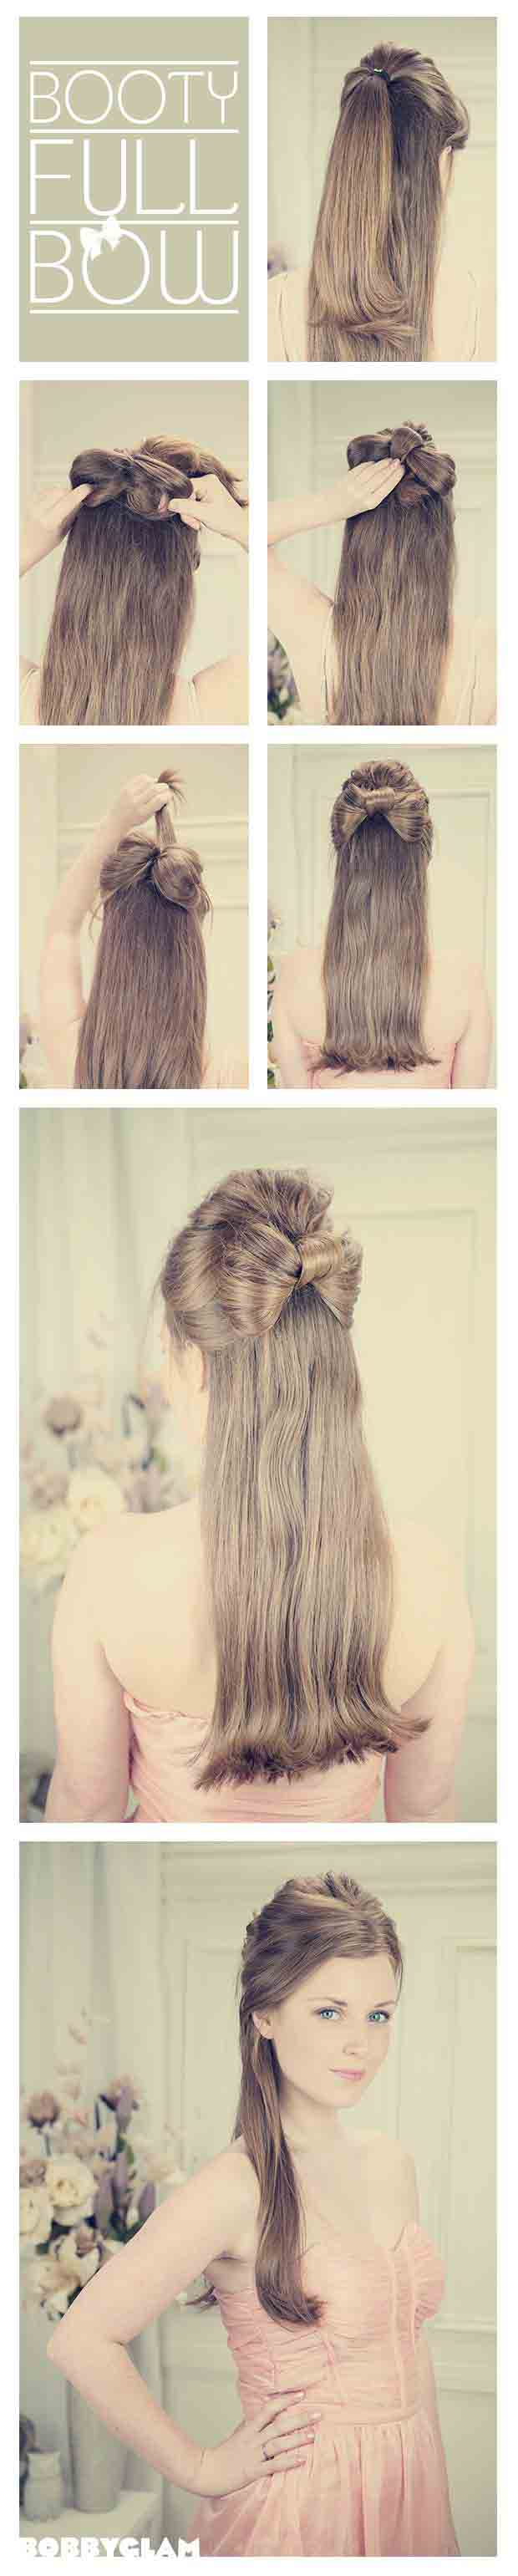 Best Open Hairstyles For Party 2018 In Pakistan | FashionEven